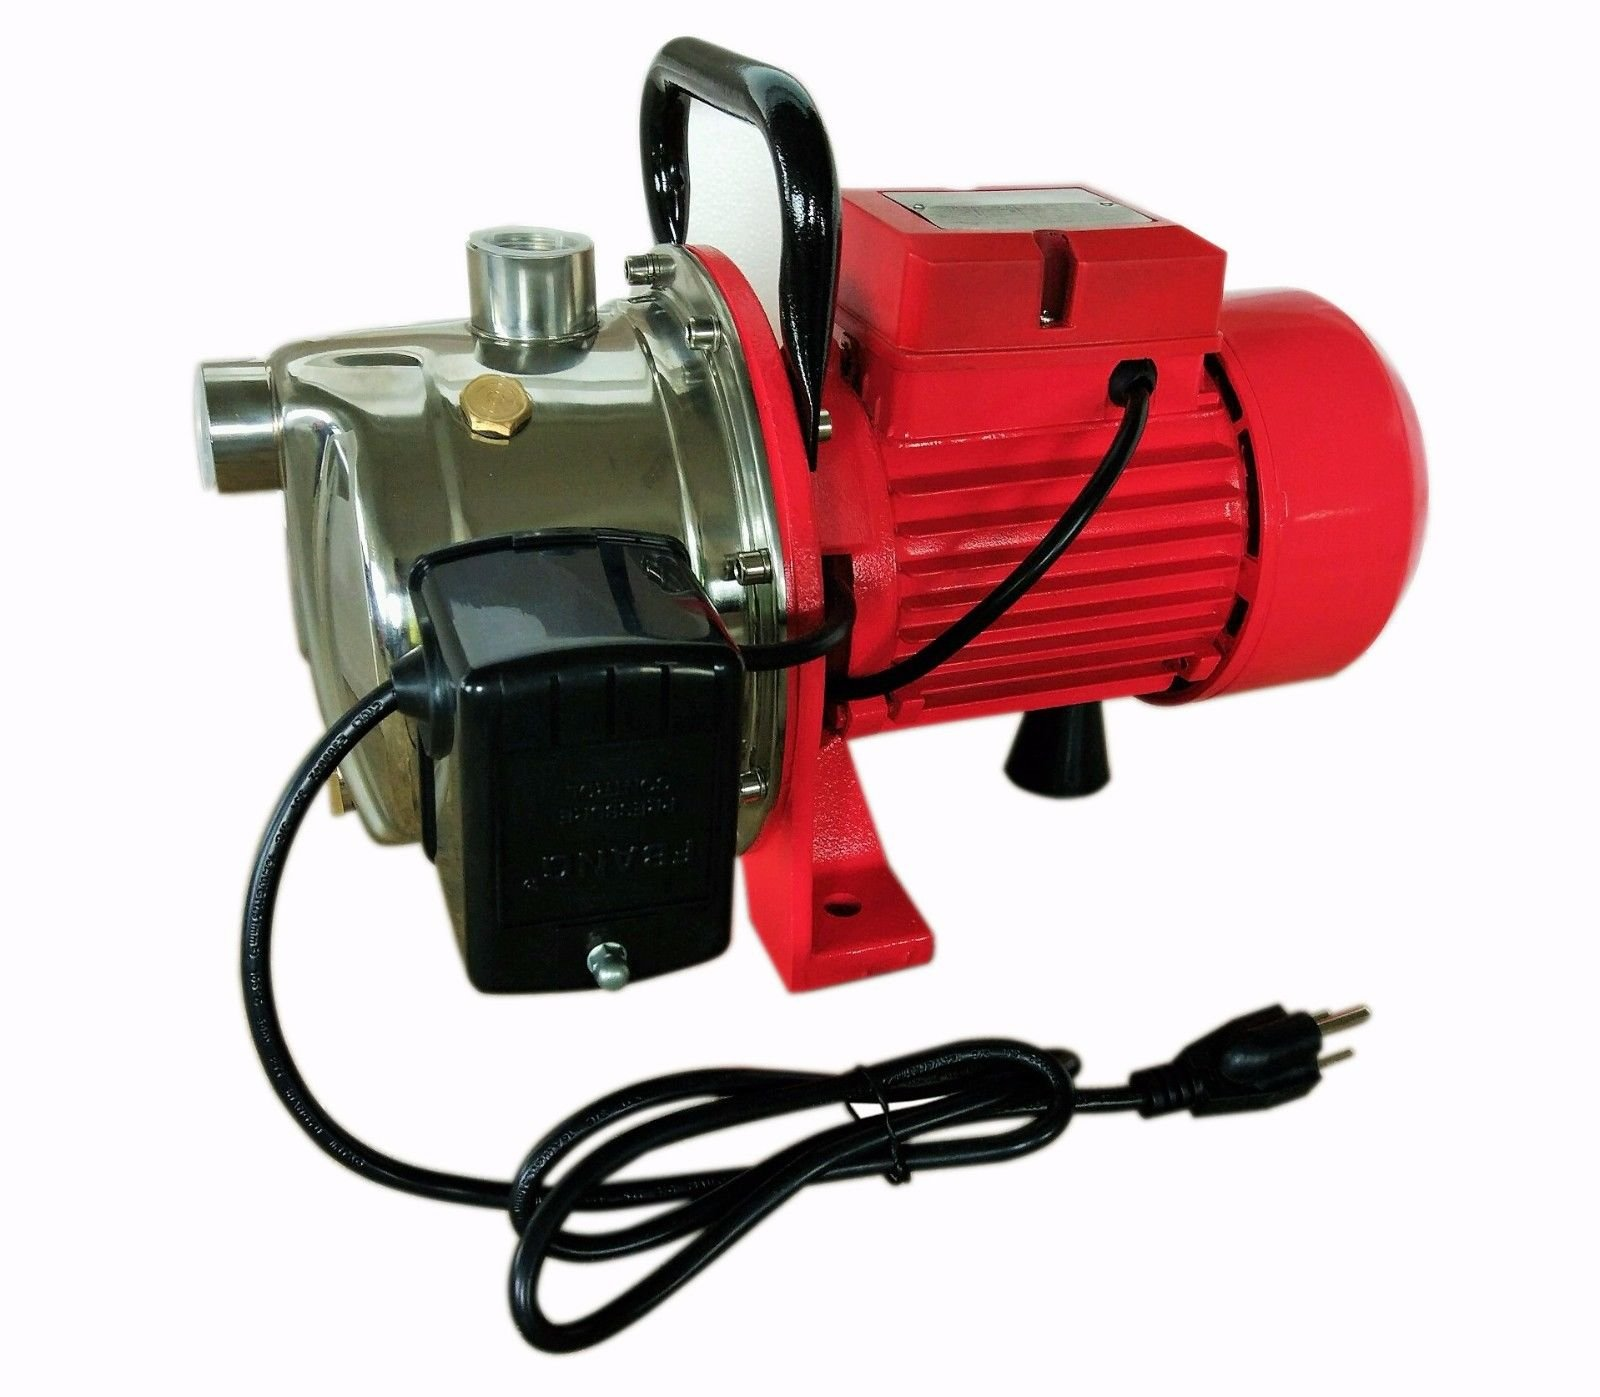 Shallow Well Jet Pump w/Pressure Switch, 3/4HP 14GPM, Stainless Steel 115/230V By Allgoodsdelight365 by allgoodsdelight365